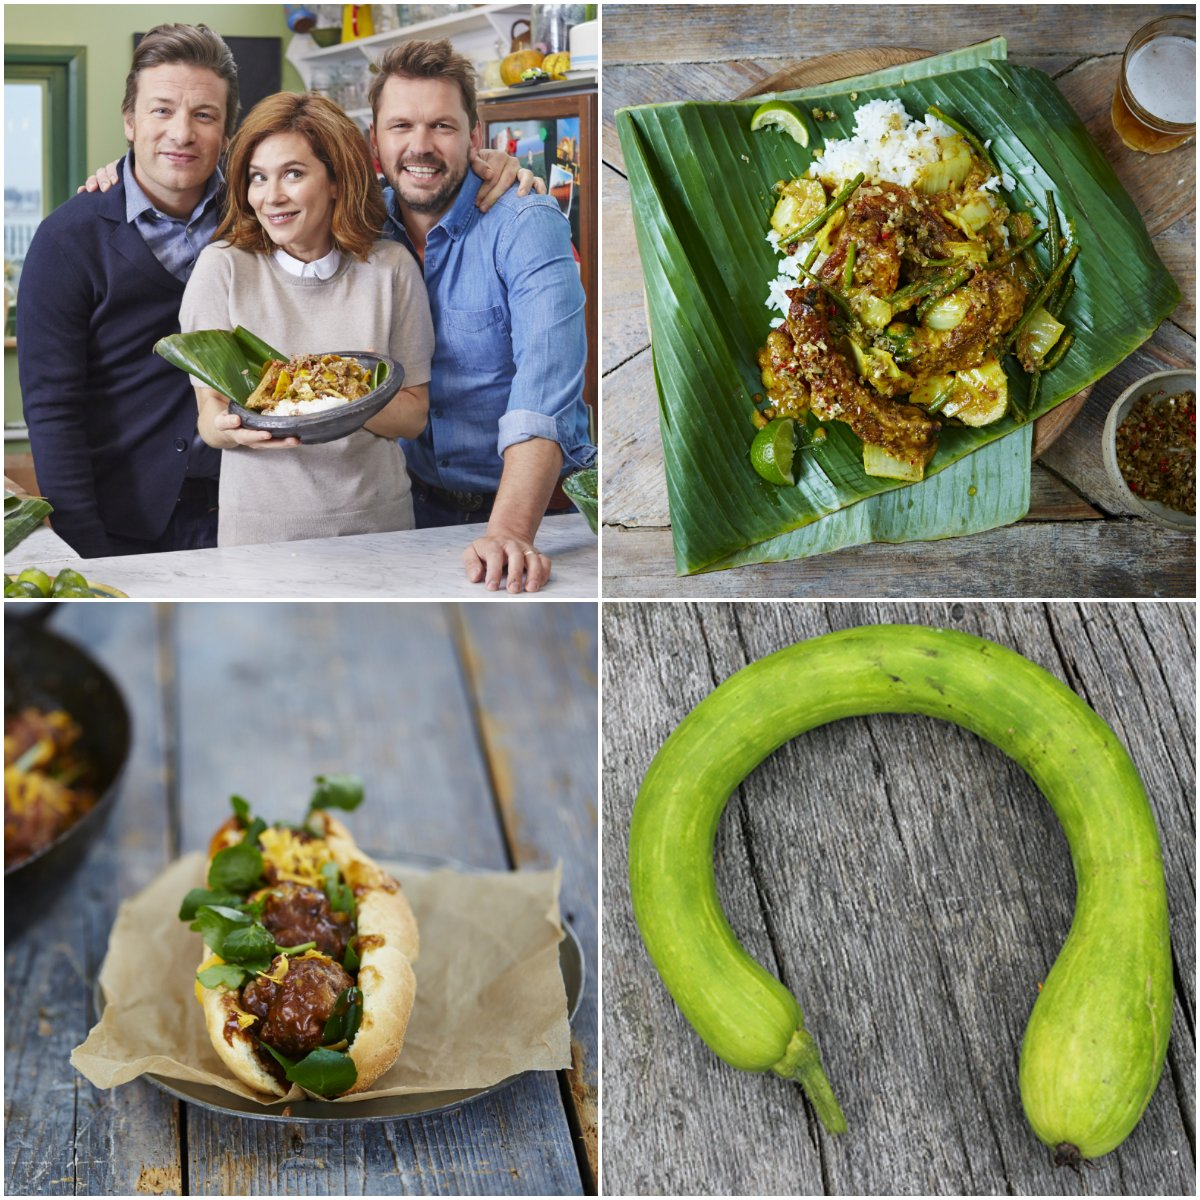 All the recipes from tonights #FridayNightFeast over on https://t.co/TD6Lhkf8Zf https://t.co/fLOMRMe8FC